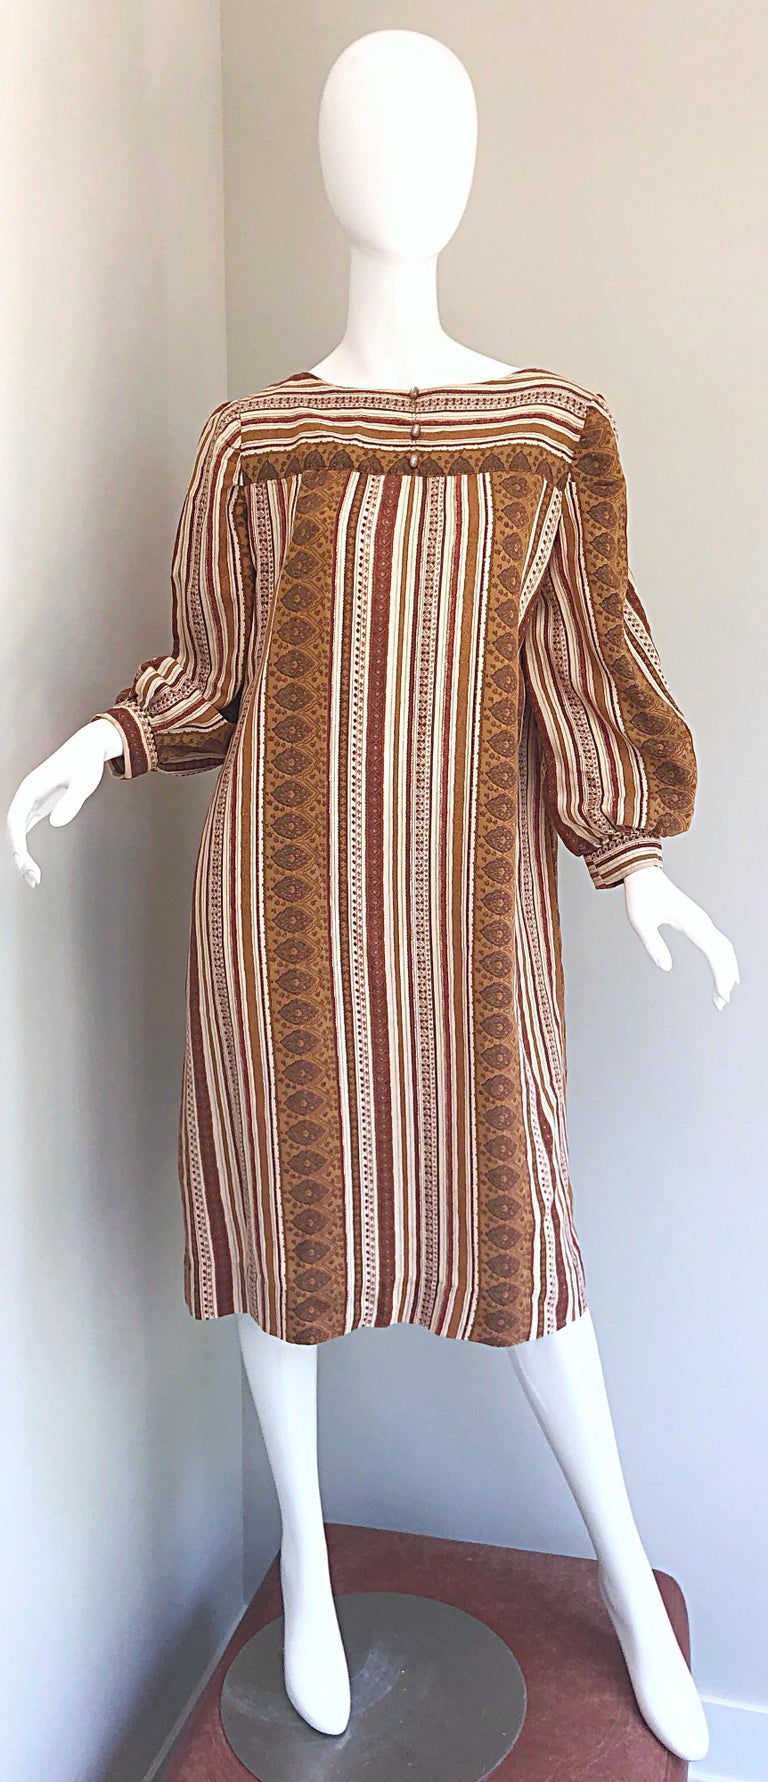 Boho chic brown, tan and ivory cotton sac dress! Reminiscent of the Yves Saint Laurent 1976 Russian Collection, this easy to wear gem is both stylish and comfortable. Features three mock buttons at center neck. Simply slips over the head. Great